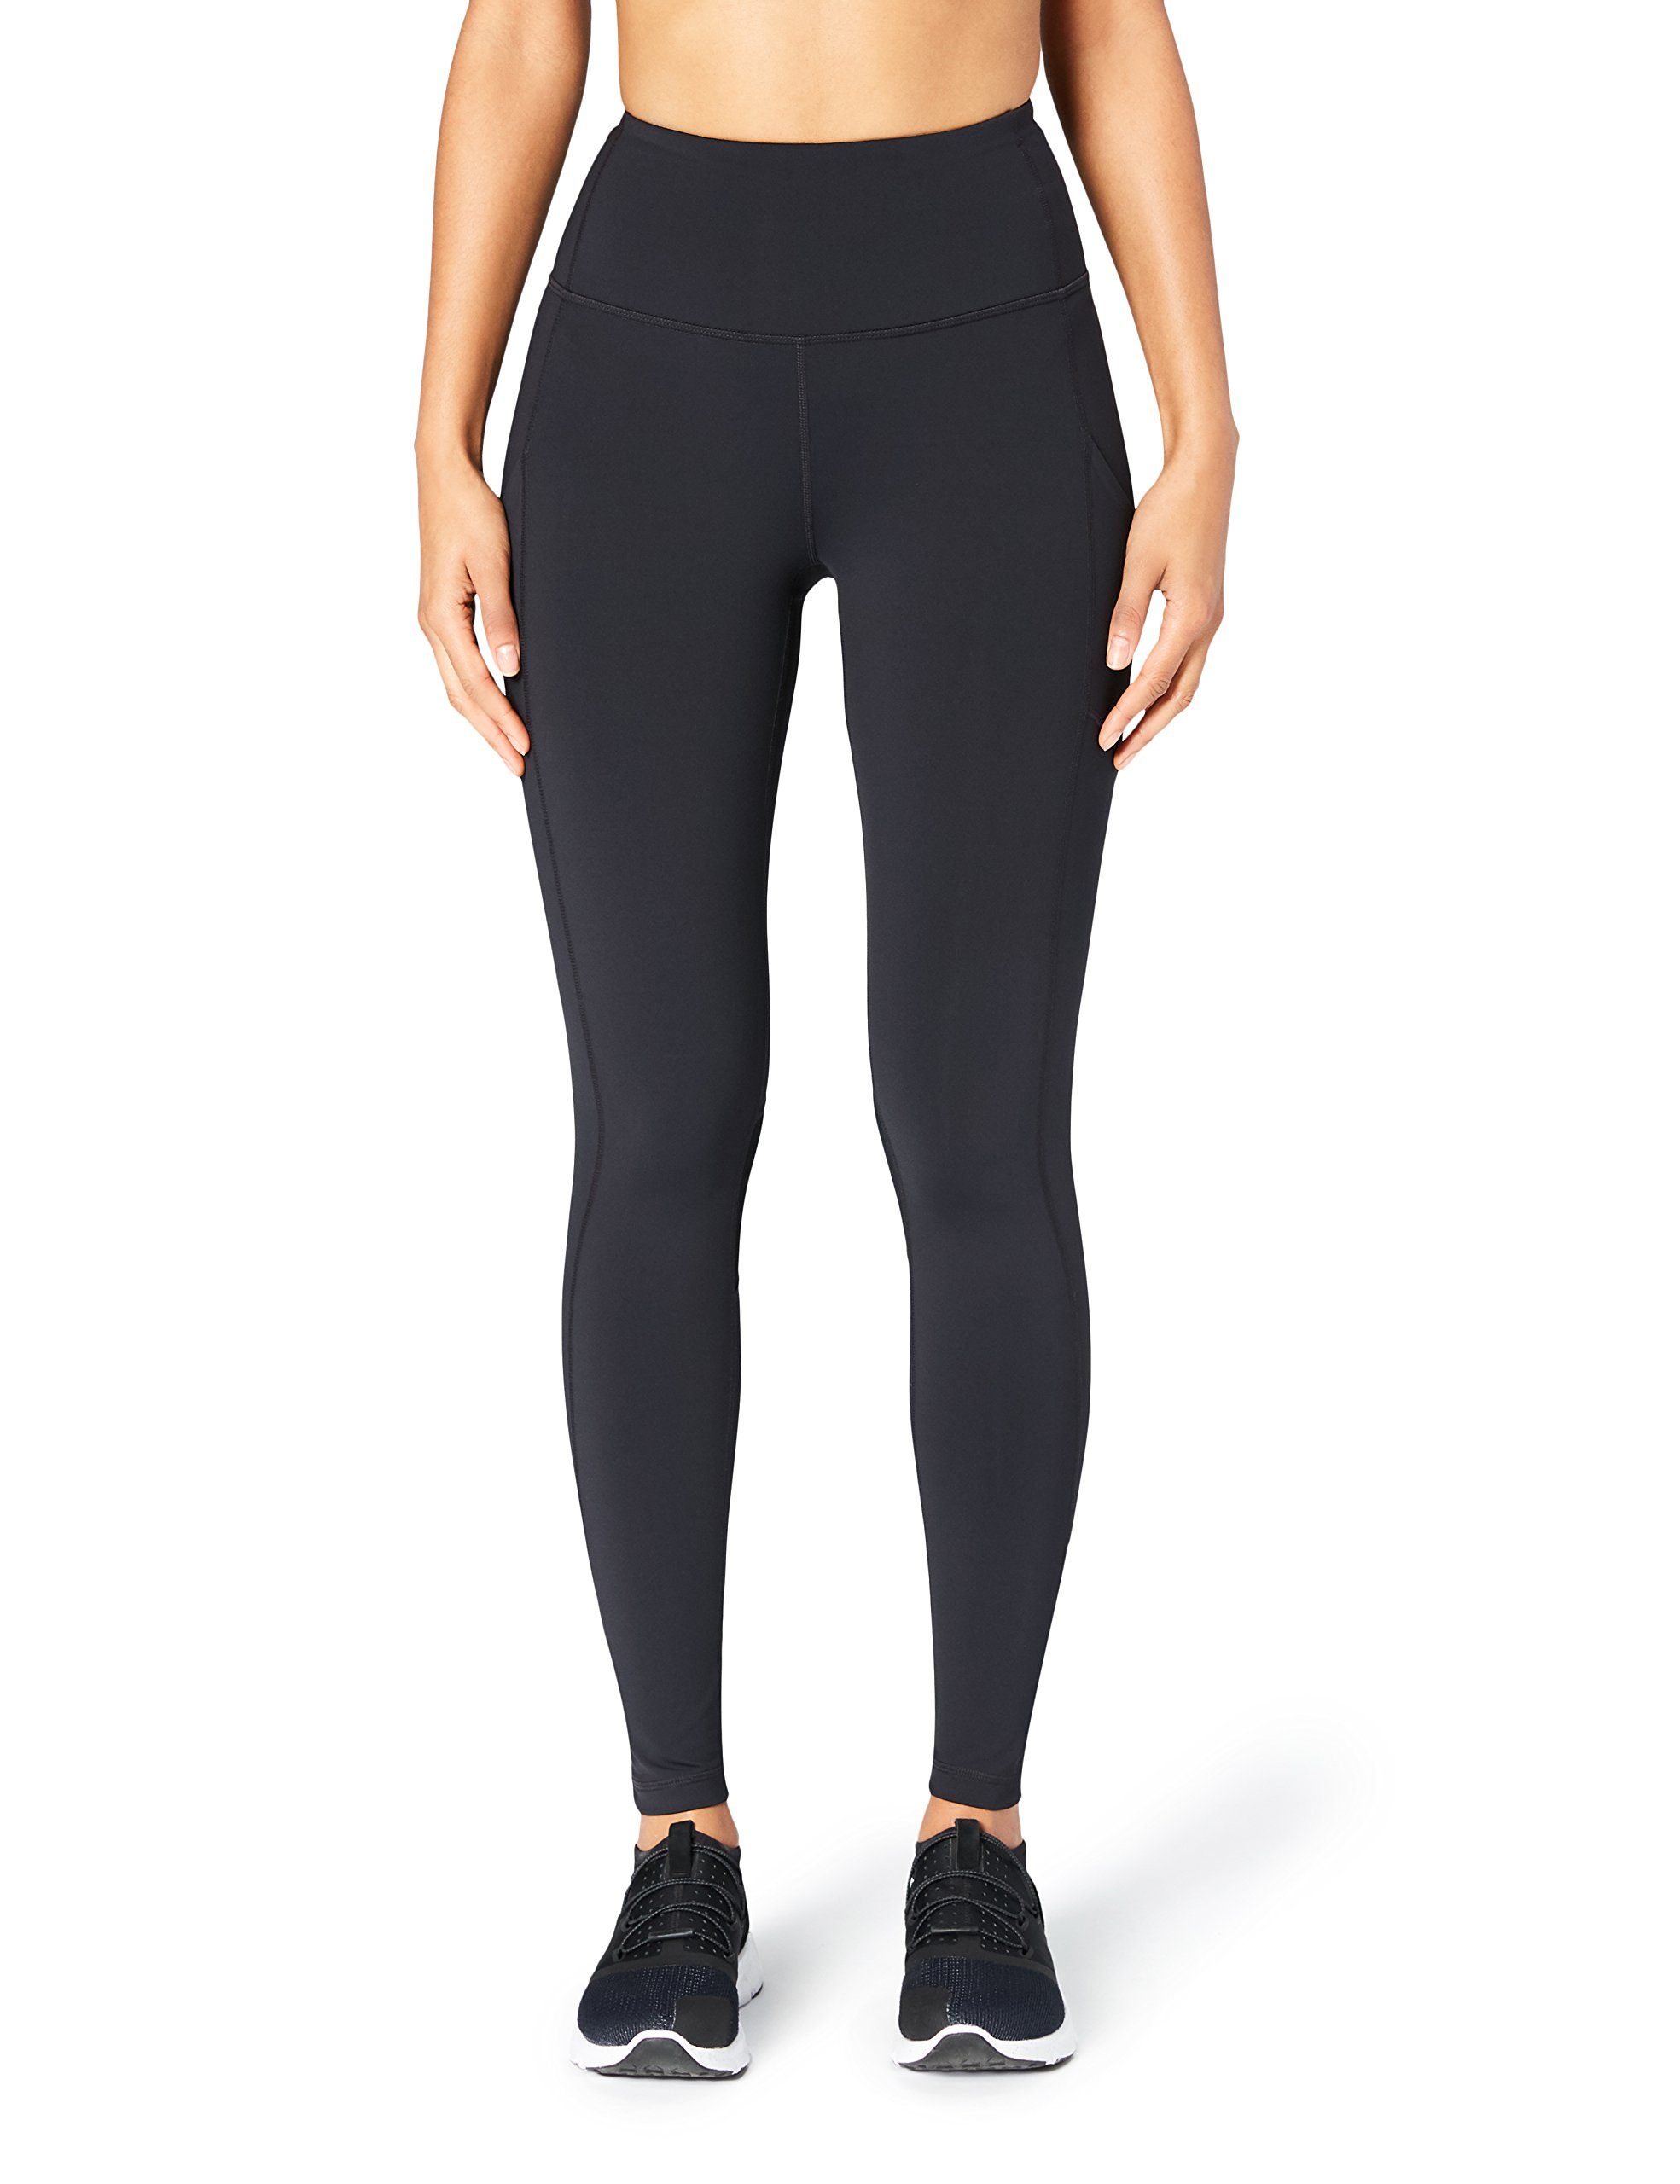 Amazon Brand – Core 10 Women's (XS-3X) 'Build Your Own' Onstride Run Full-Length Legging with Pockets, Inseams Available